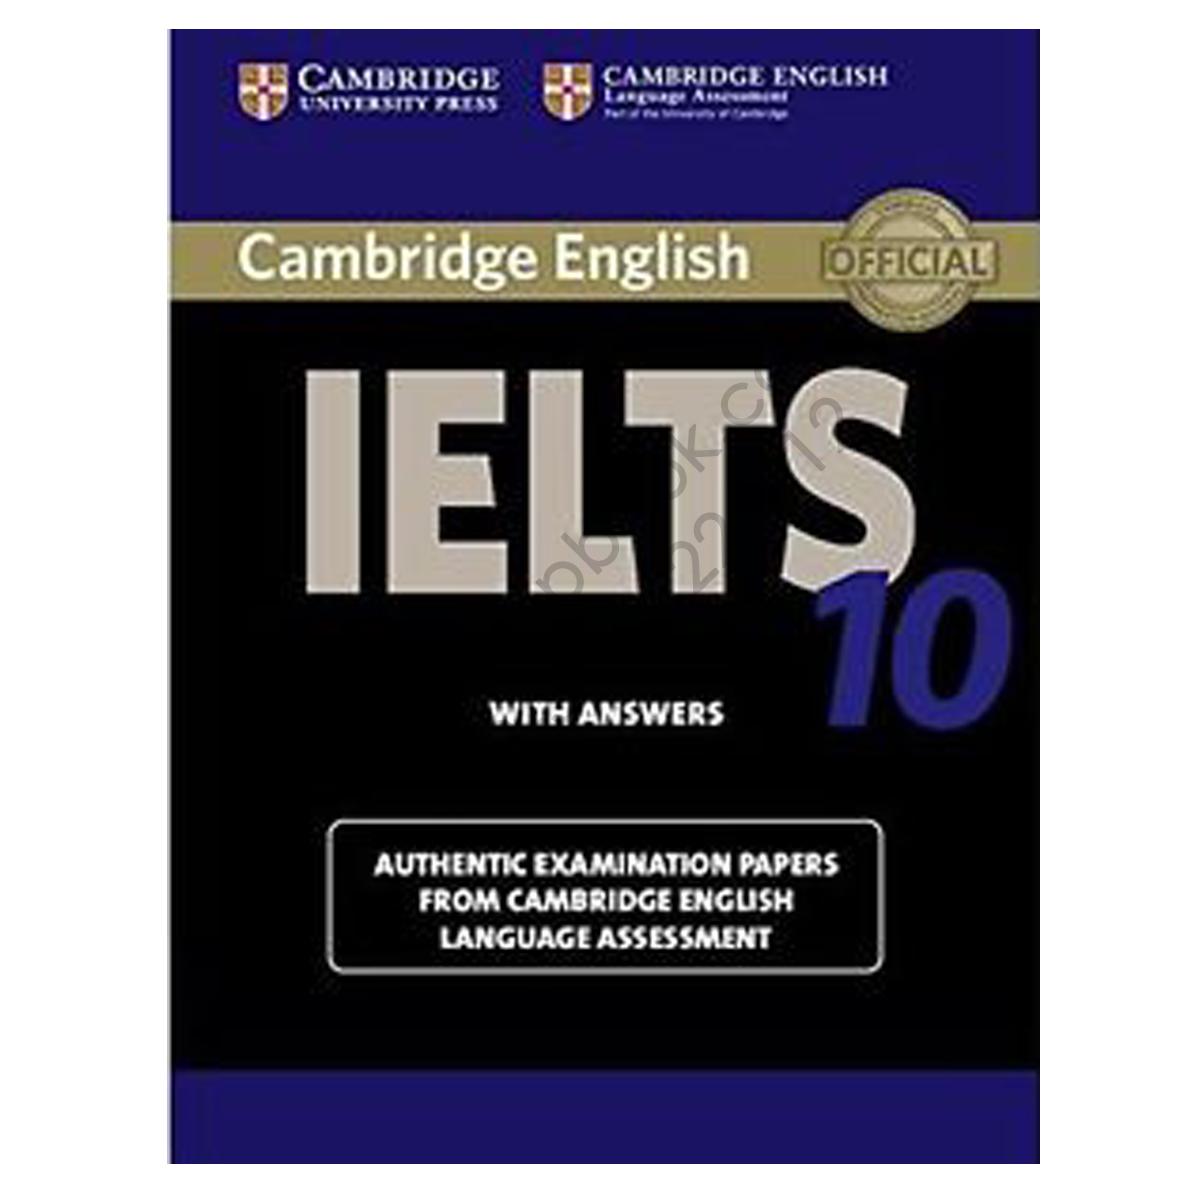 cambridge english ielts 10 book with answers and 2 audio cds